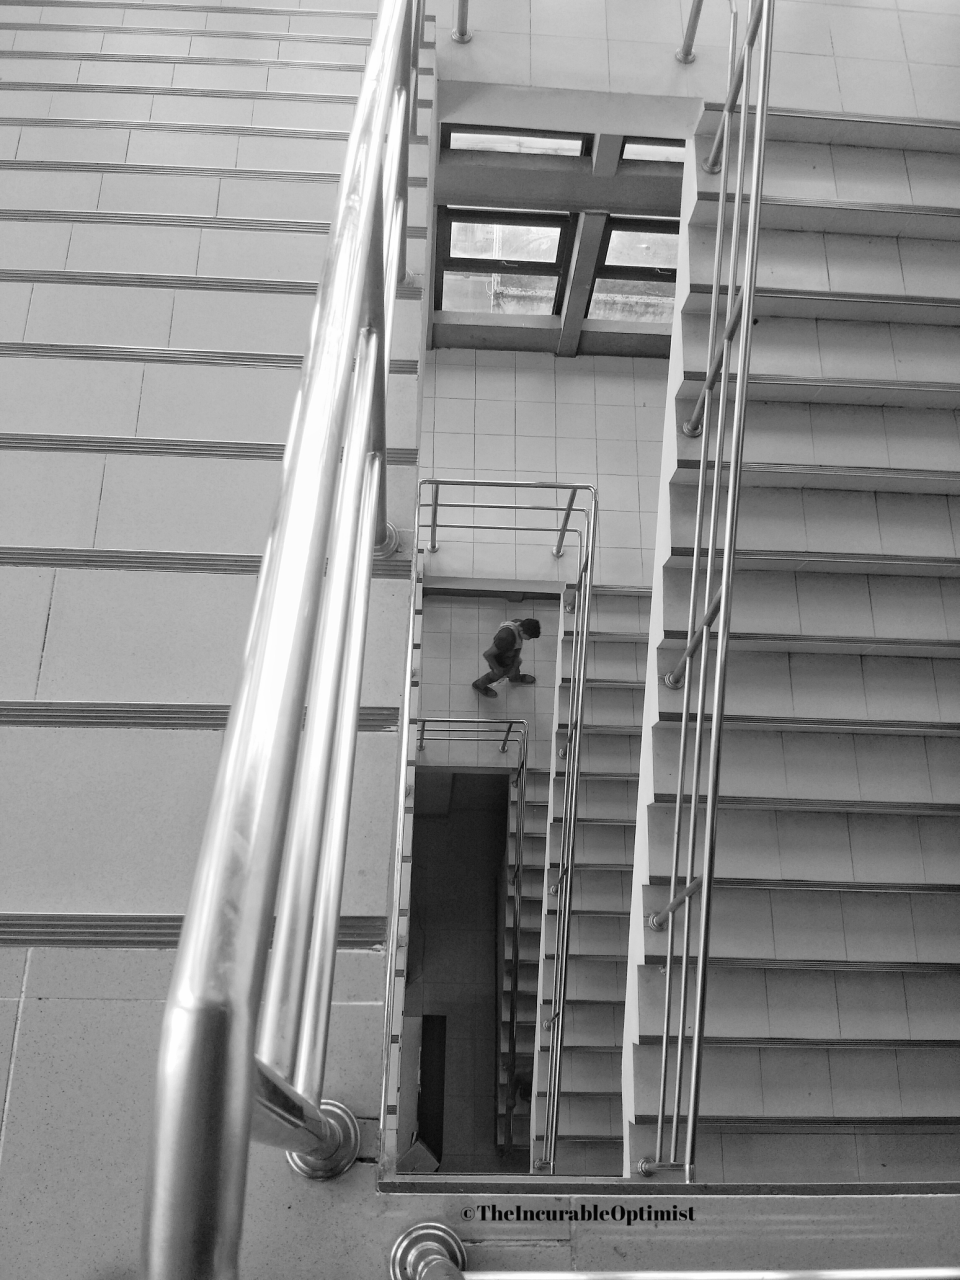 Picture of a man on a flight of stairs